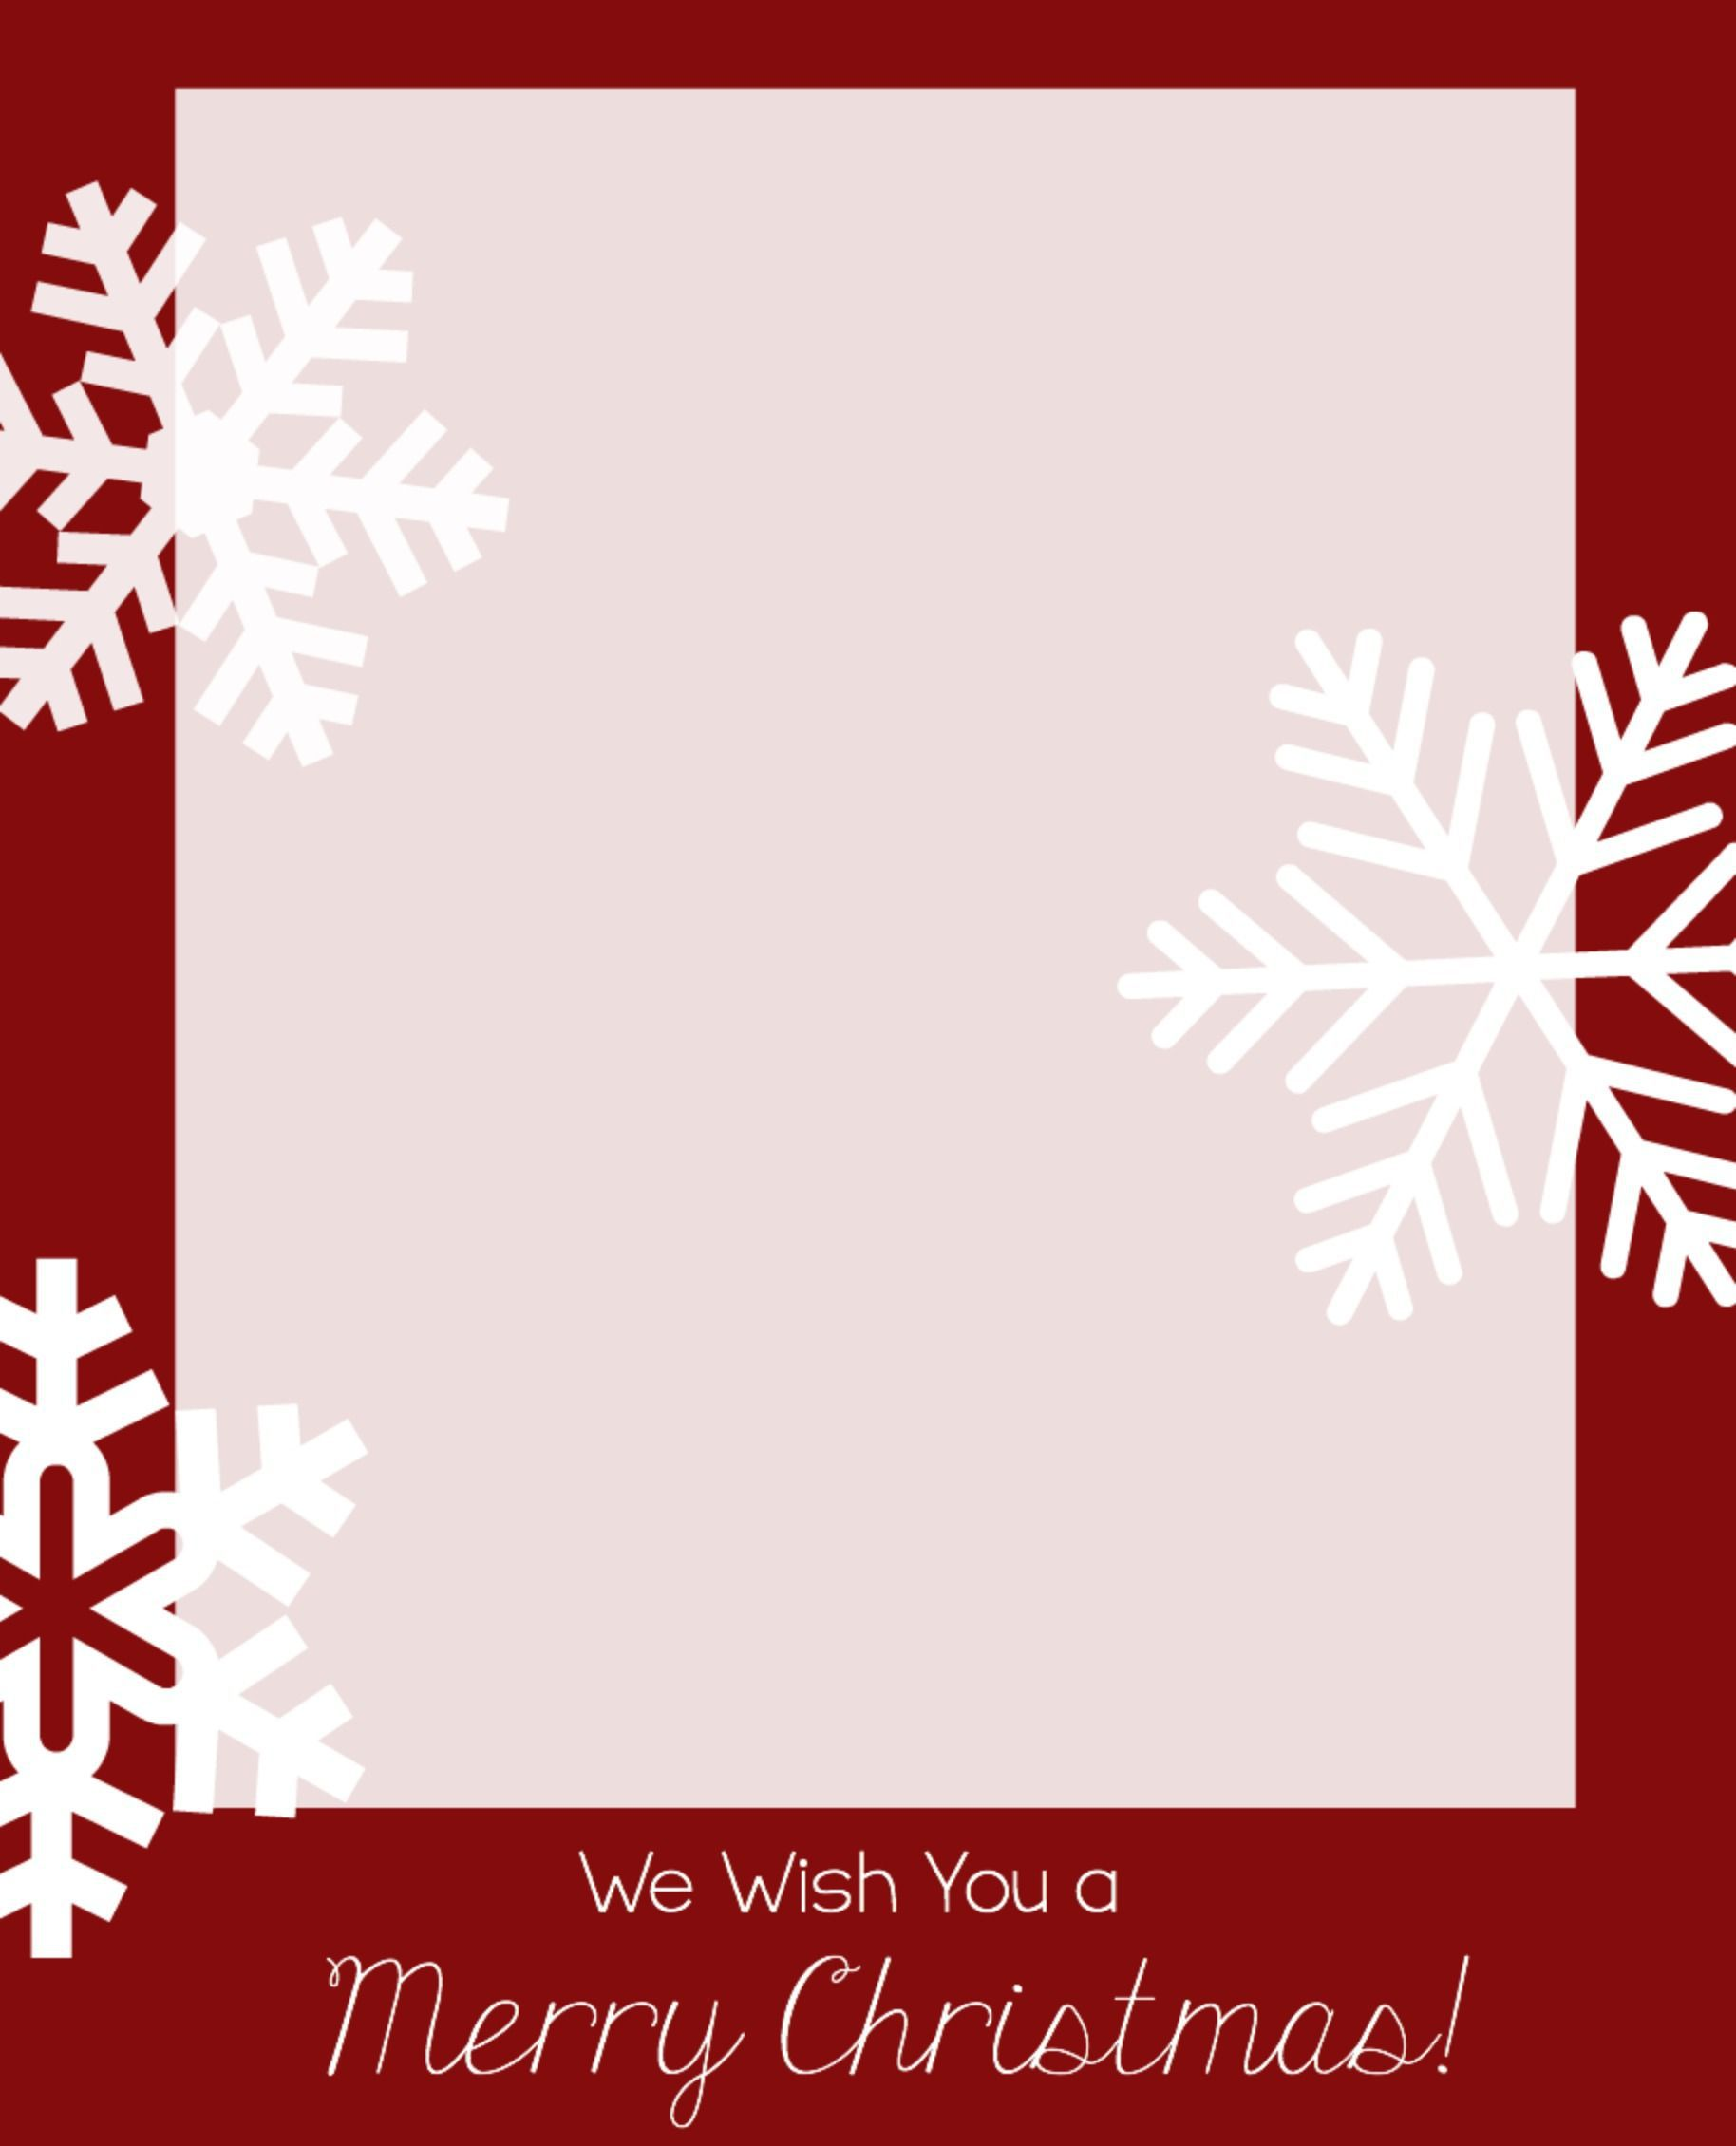 005 Simple Christma Card Template Free Download Photo  Xma PlaceFull